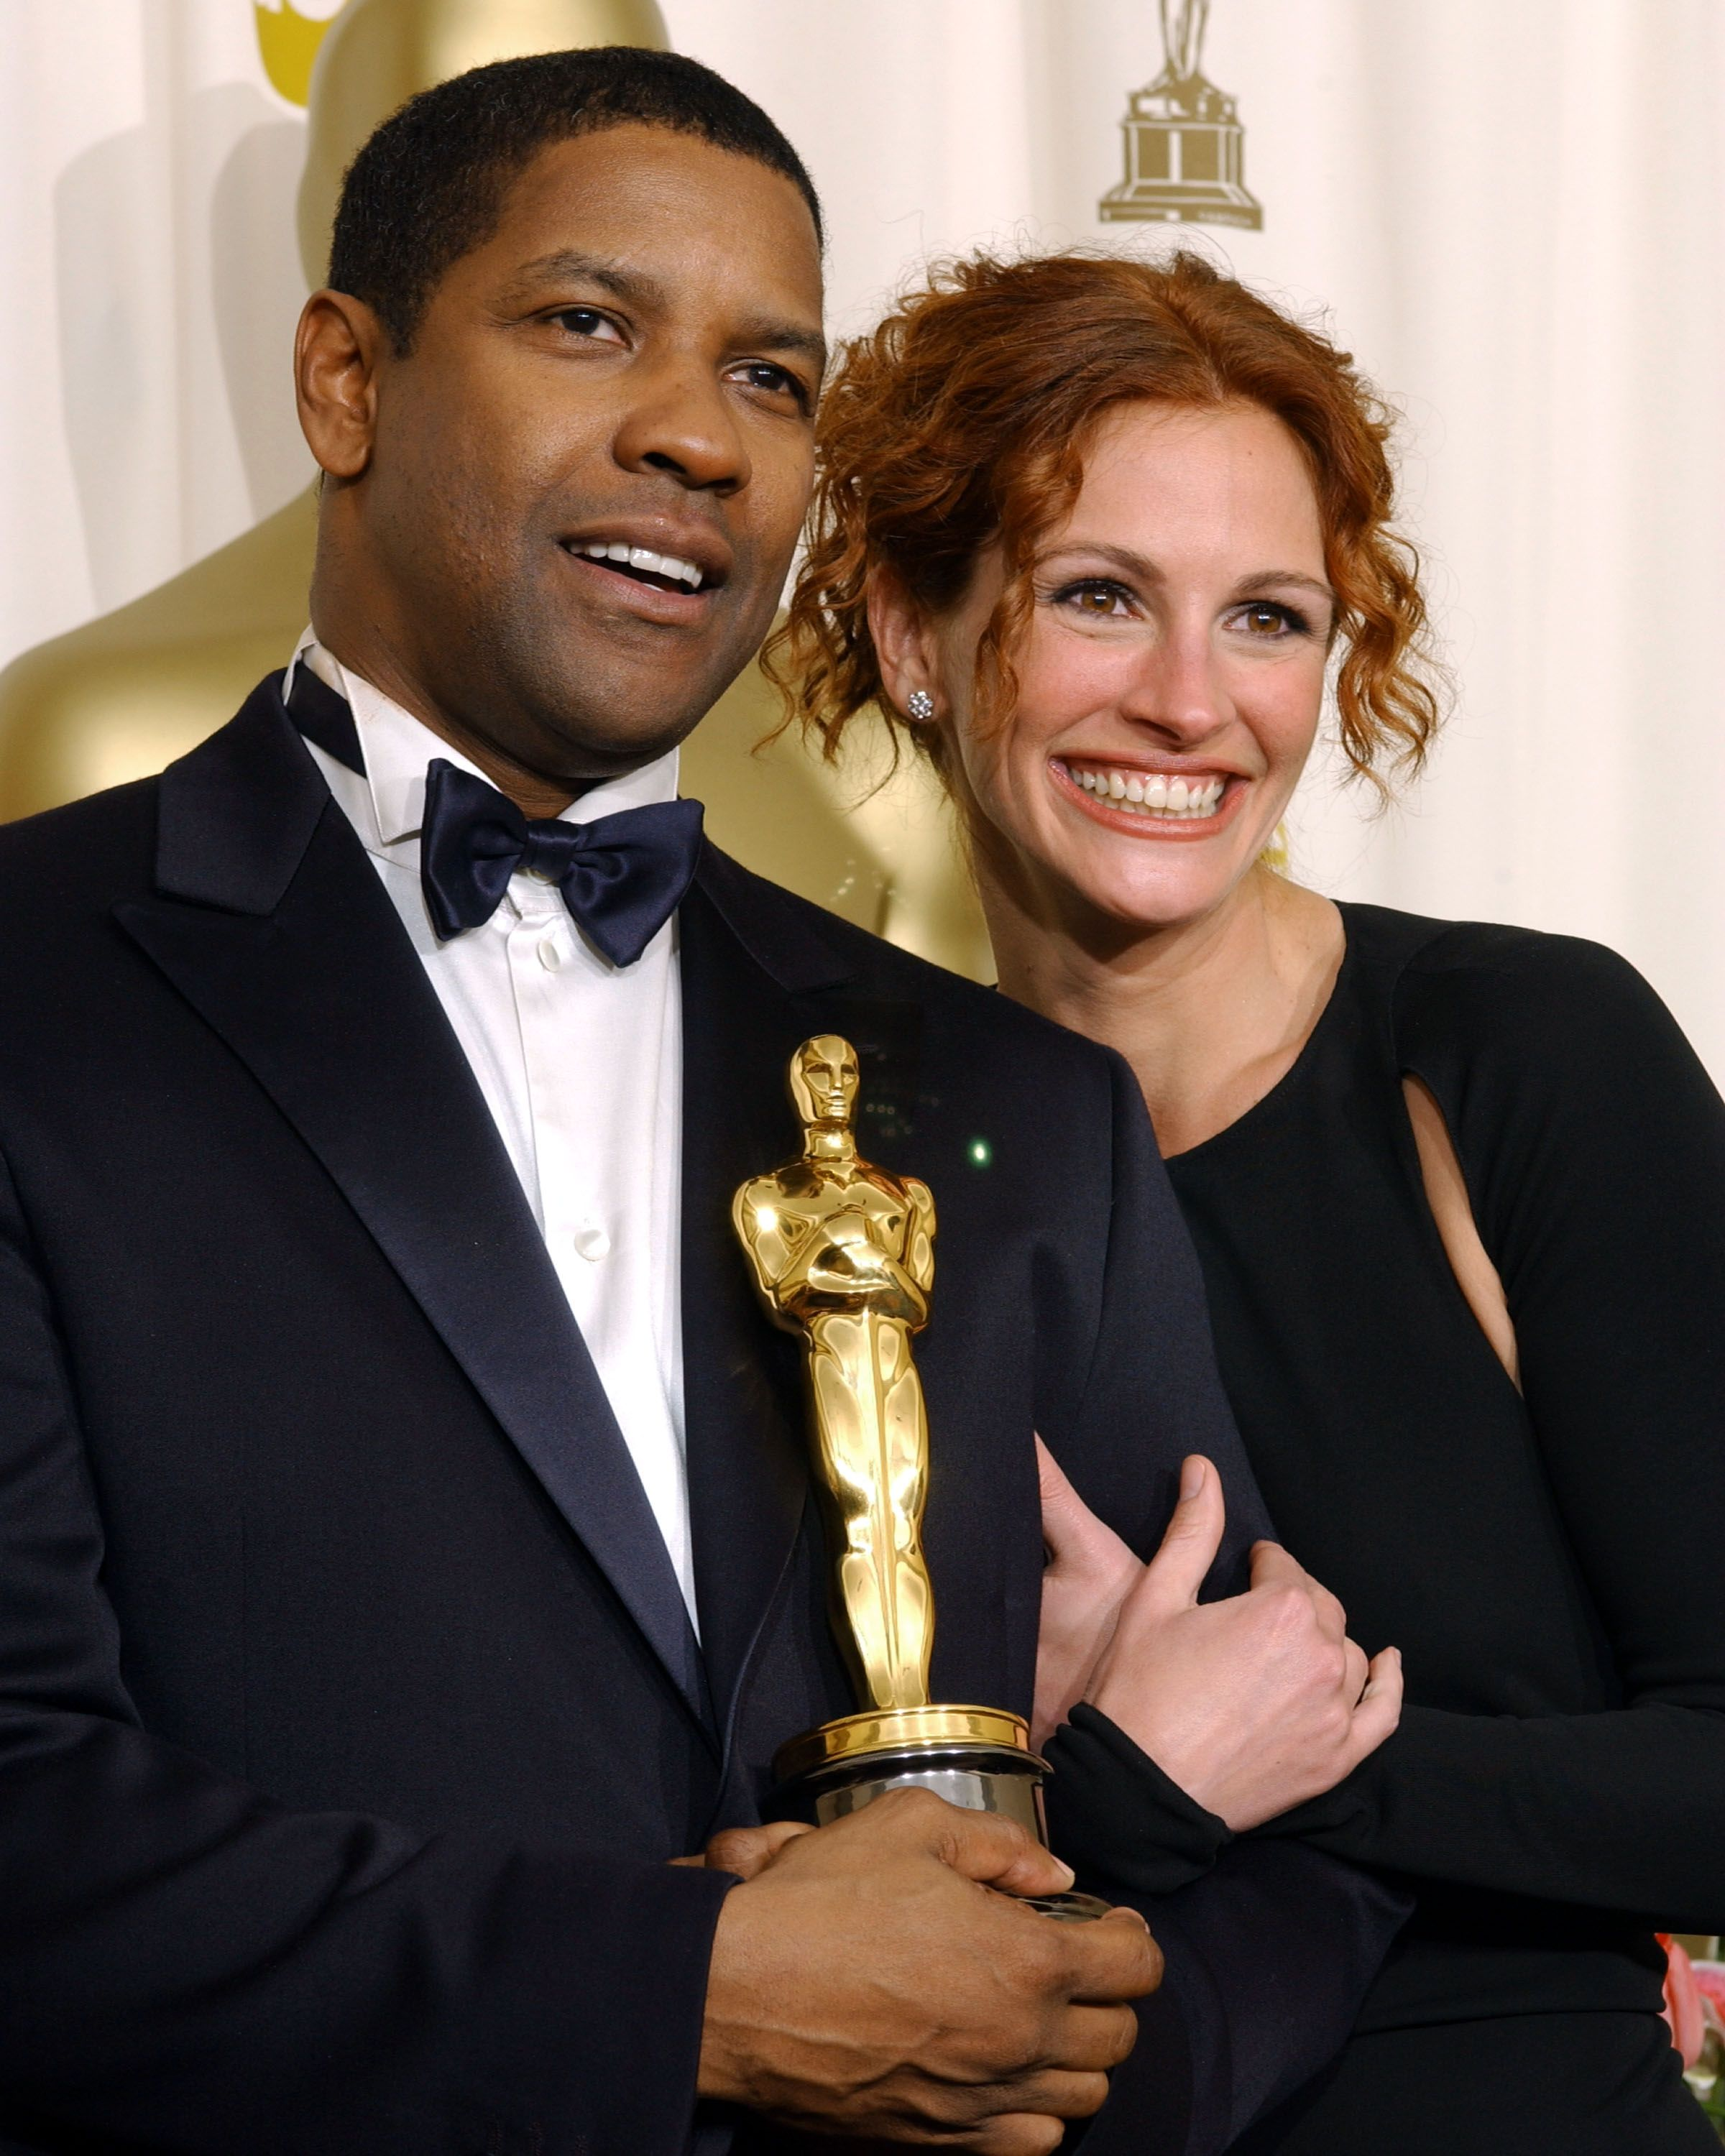 Denzel Washington and Julia Roberts at the 74th Annual Academy Awards in 2002 | Source: Getty Images